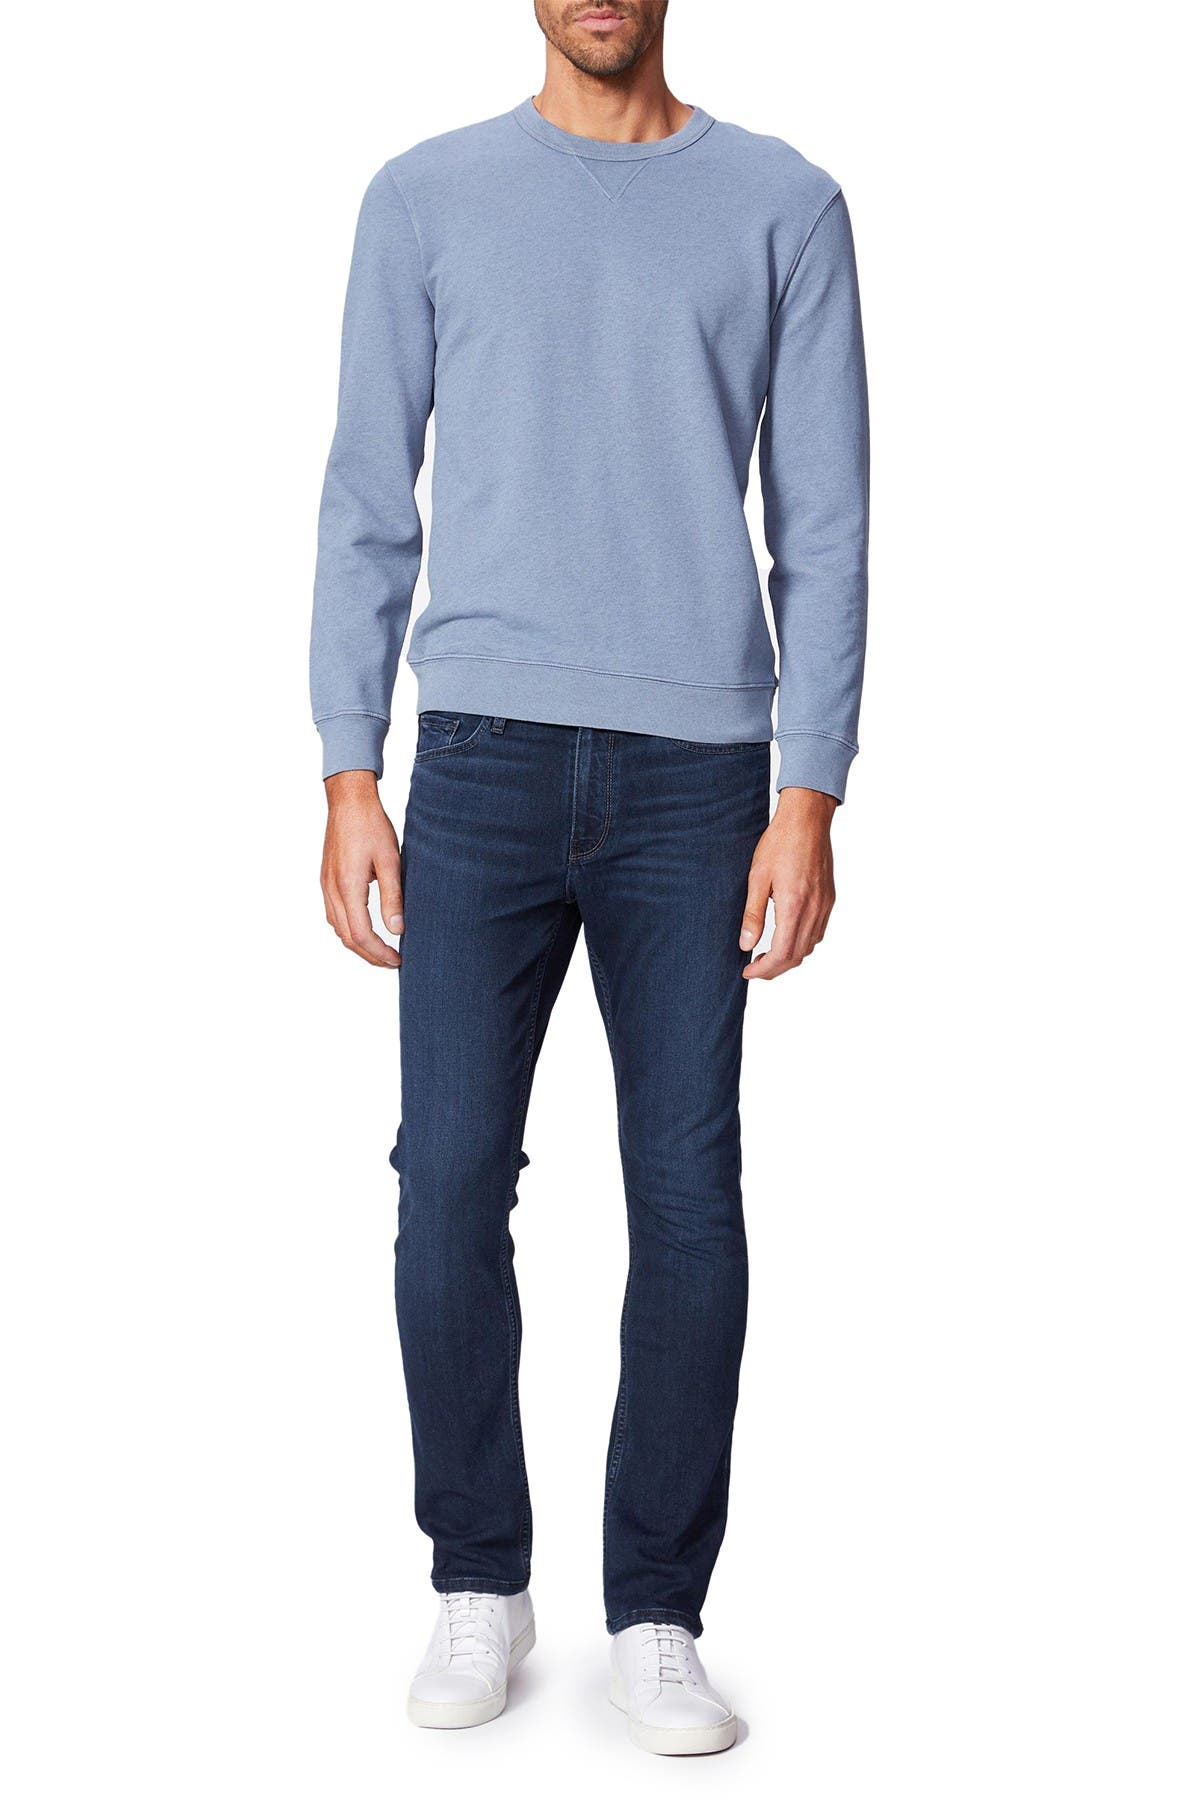 Image of PAIGE Brysen Crew Neck Long Sleeve T-Shirt